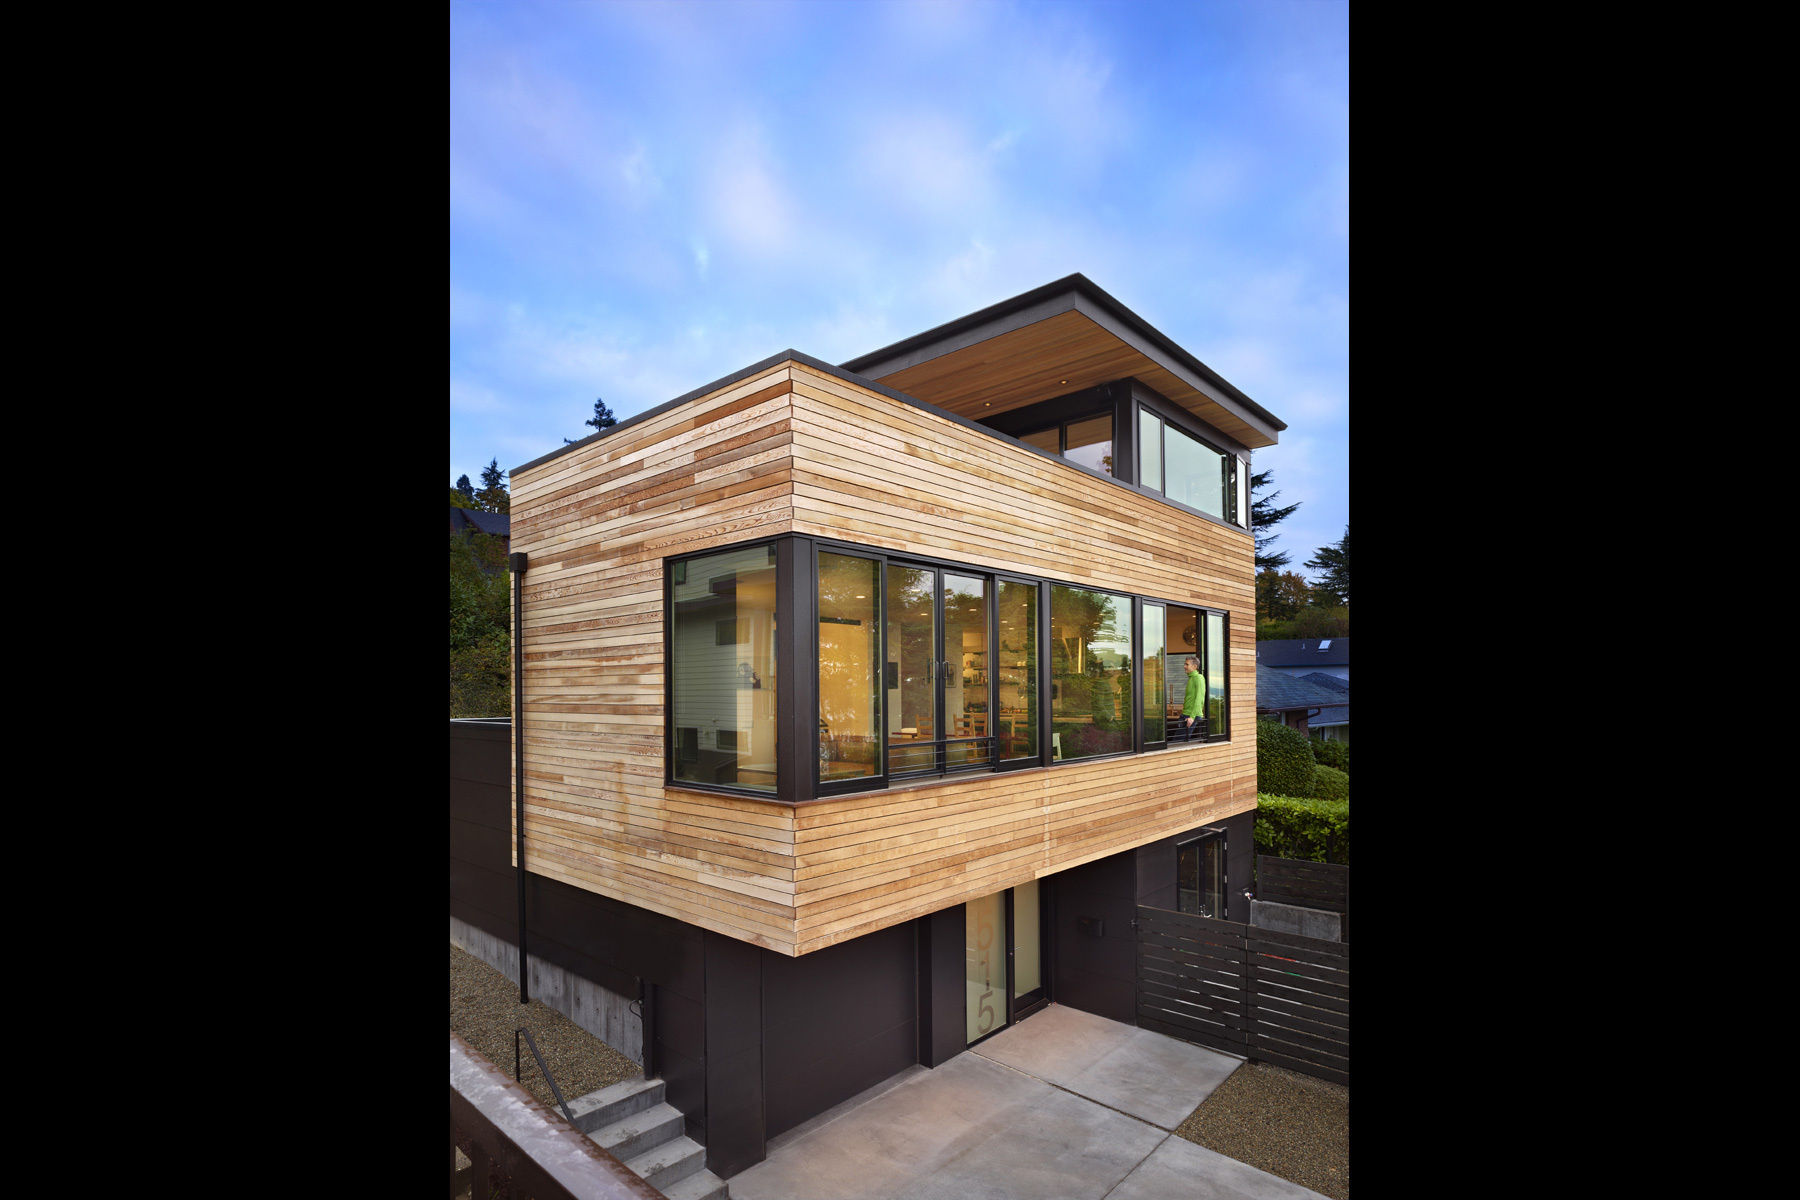 chadbourne + doss architects | cycle house - chadbourne + doss